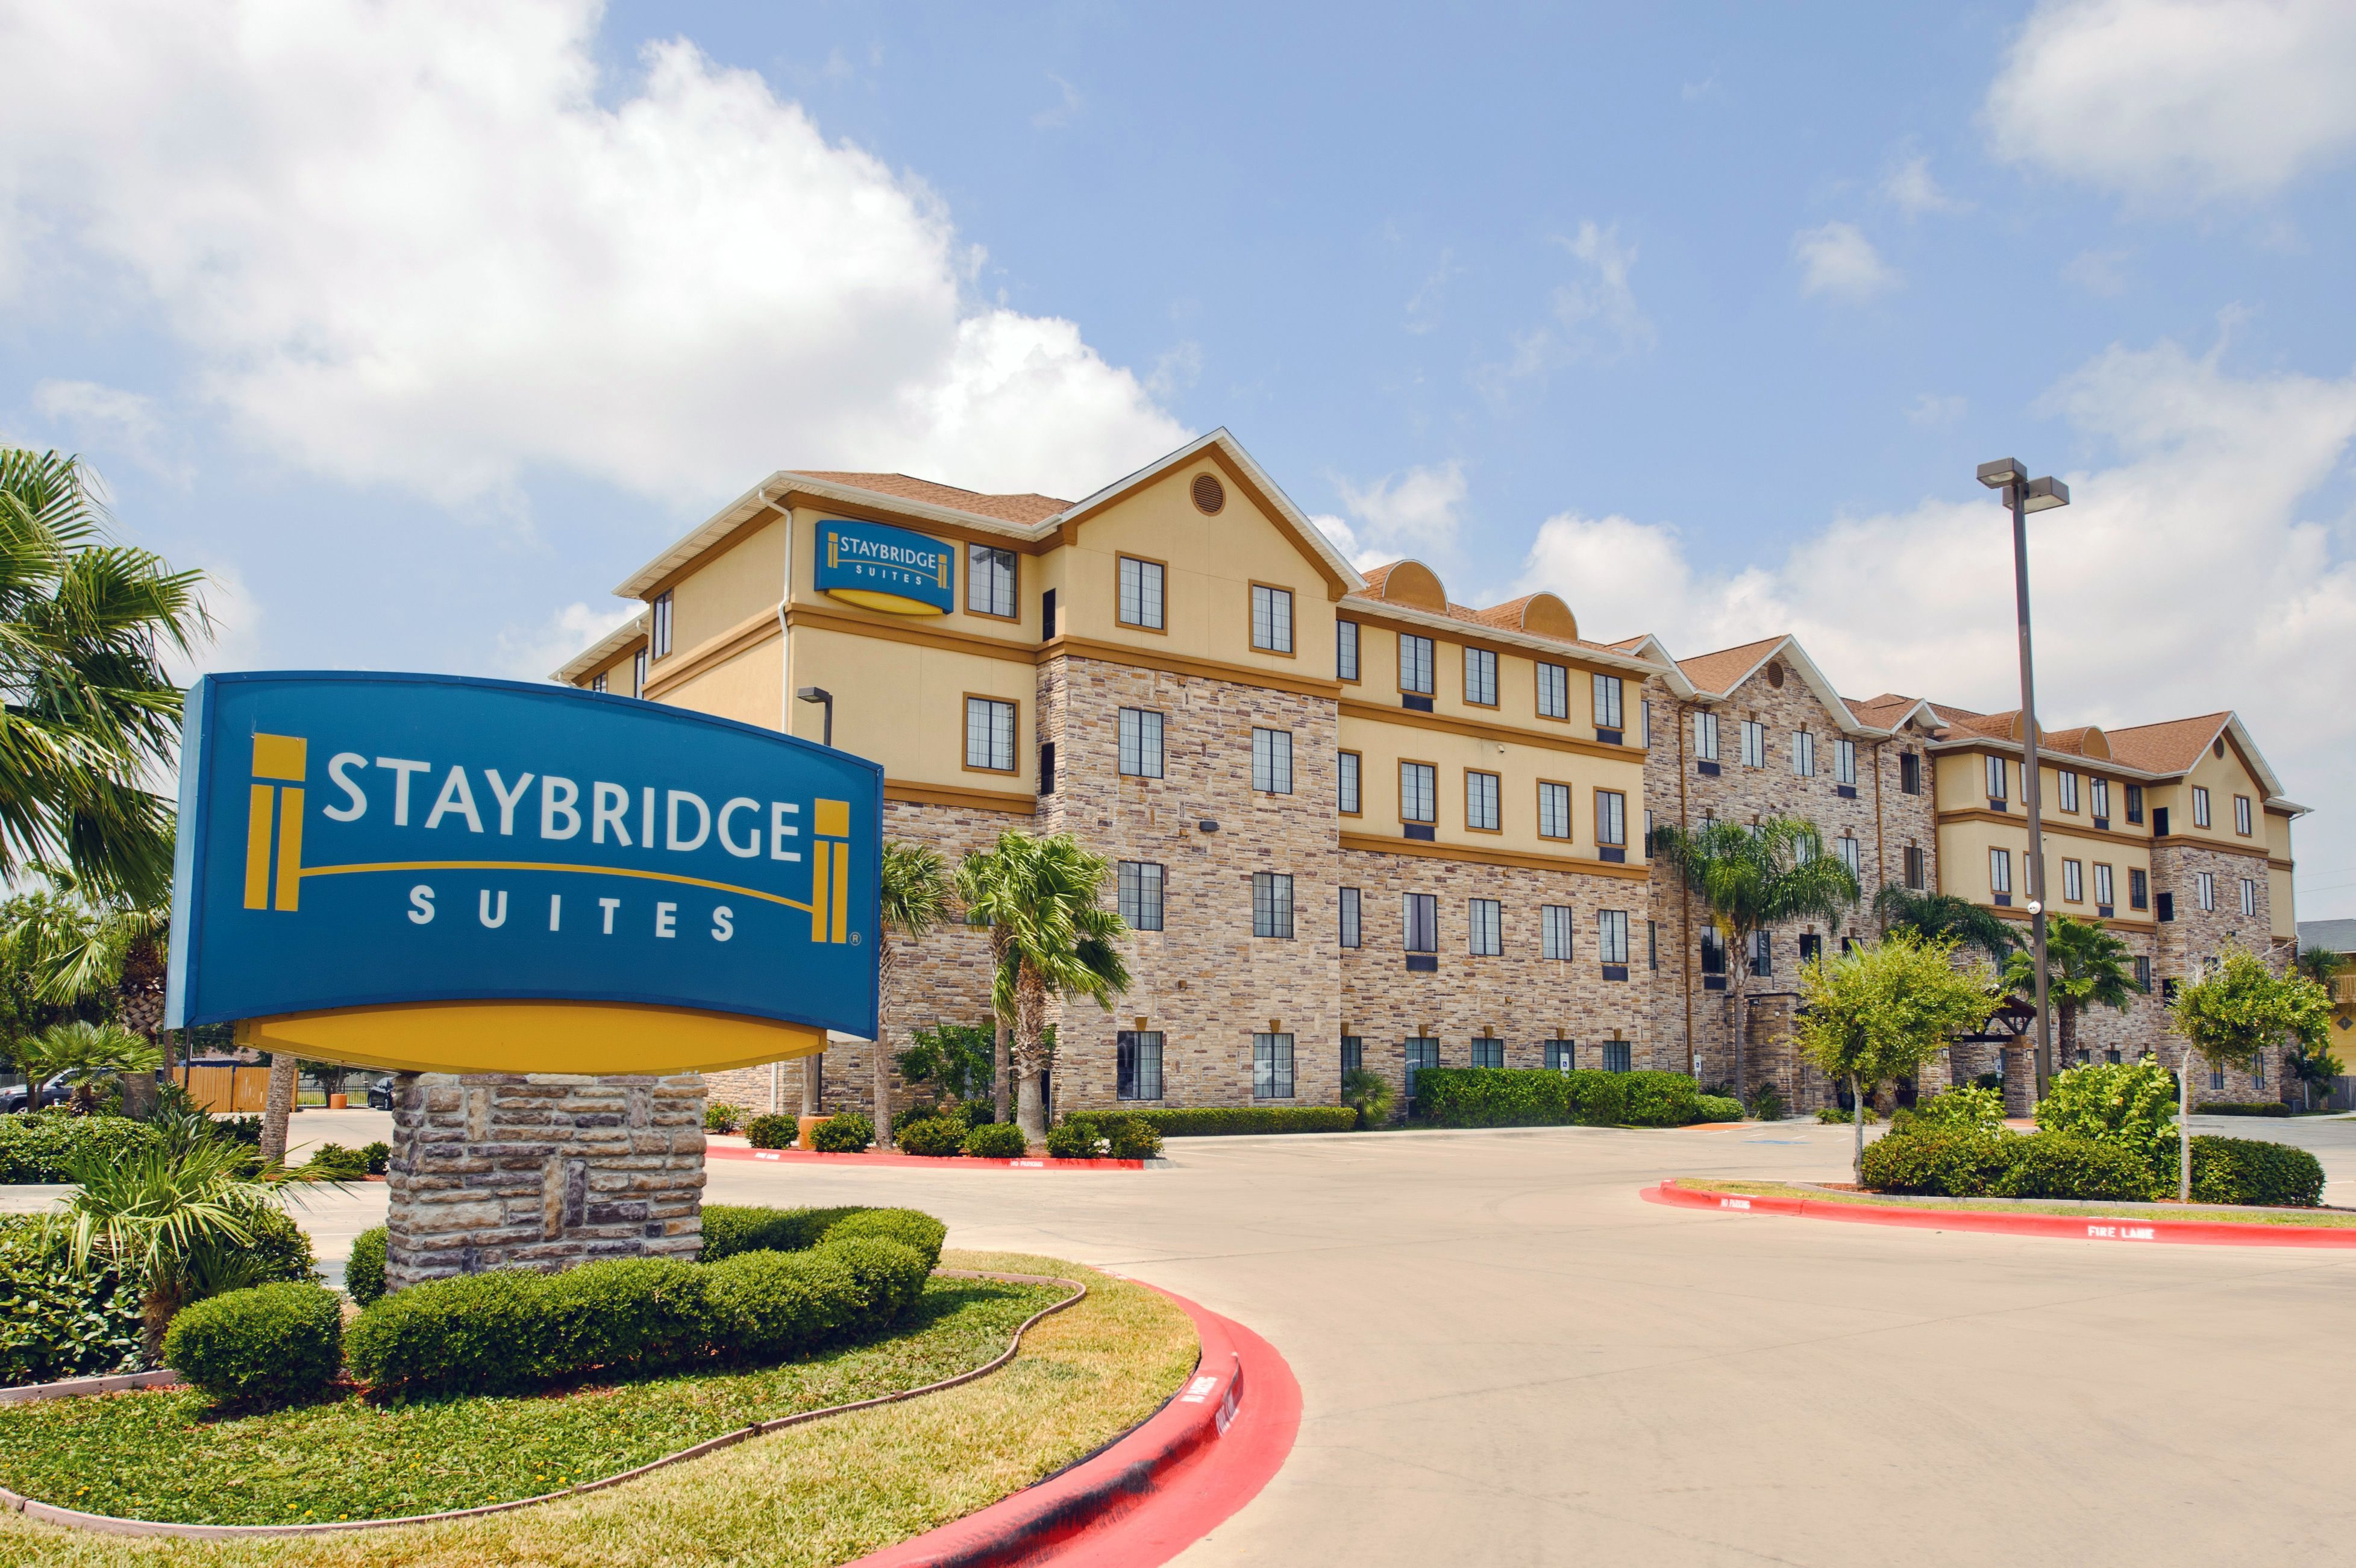 Official site of Staybridge Suites Lake Buena Vista. Staybridge Suites offers free breakfast, free internet, social evening receptions, a fitness room, and 24/7 laundry. Your session will expire in 5 minutes, 0 seconds, due to inactivity/5(K).